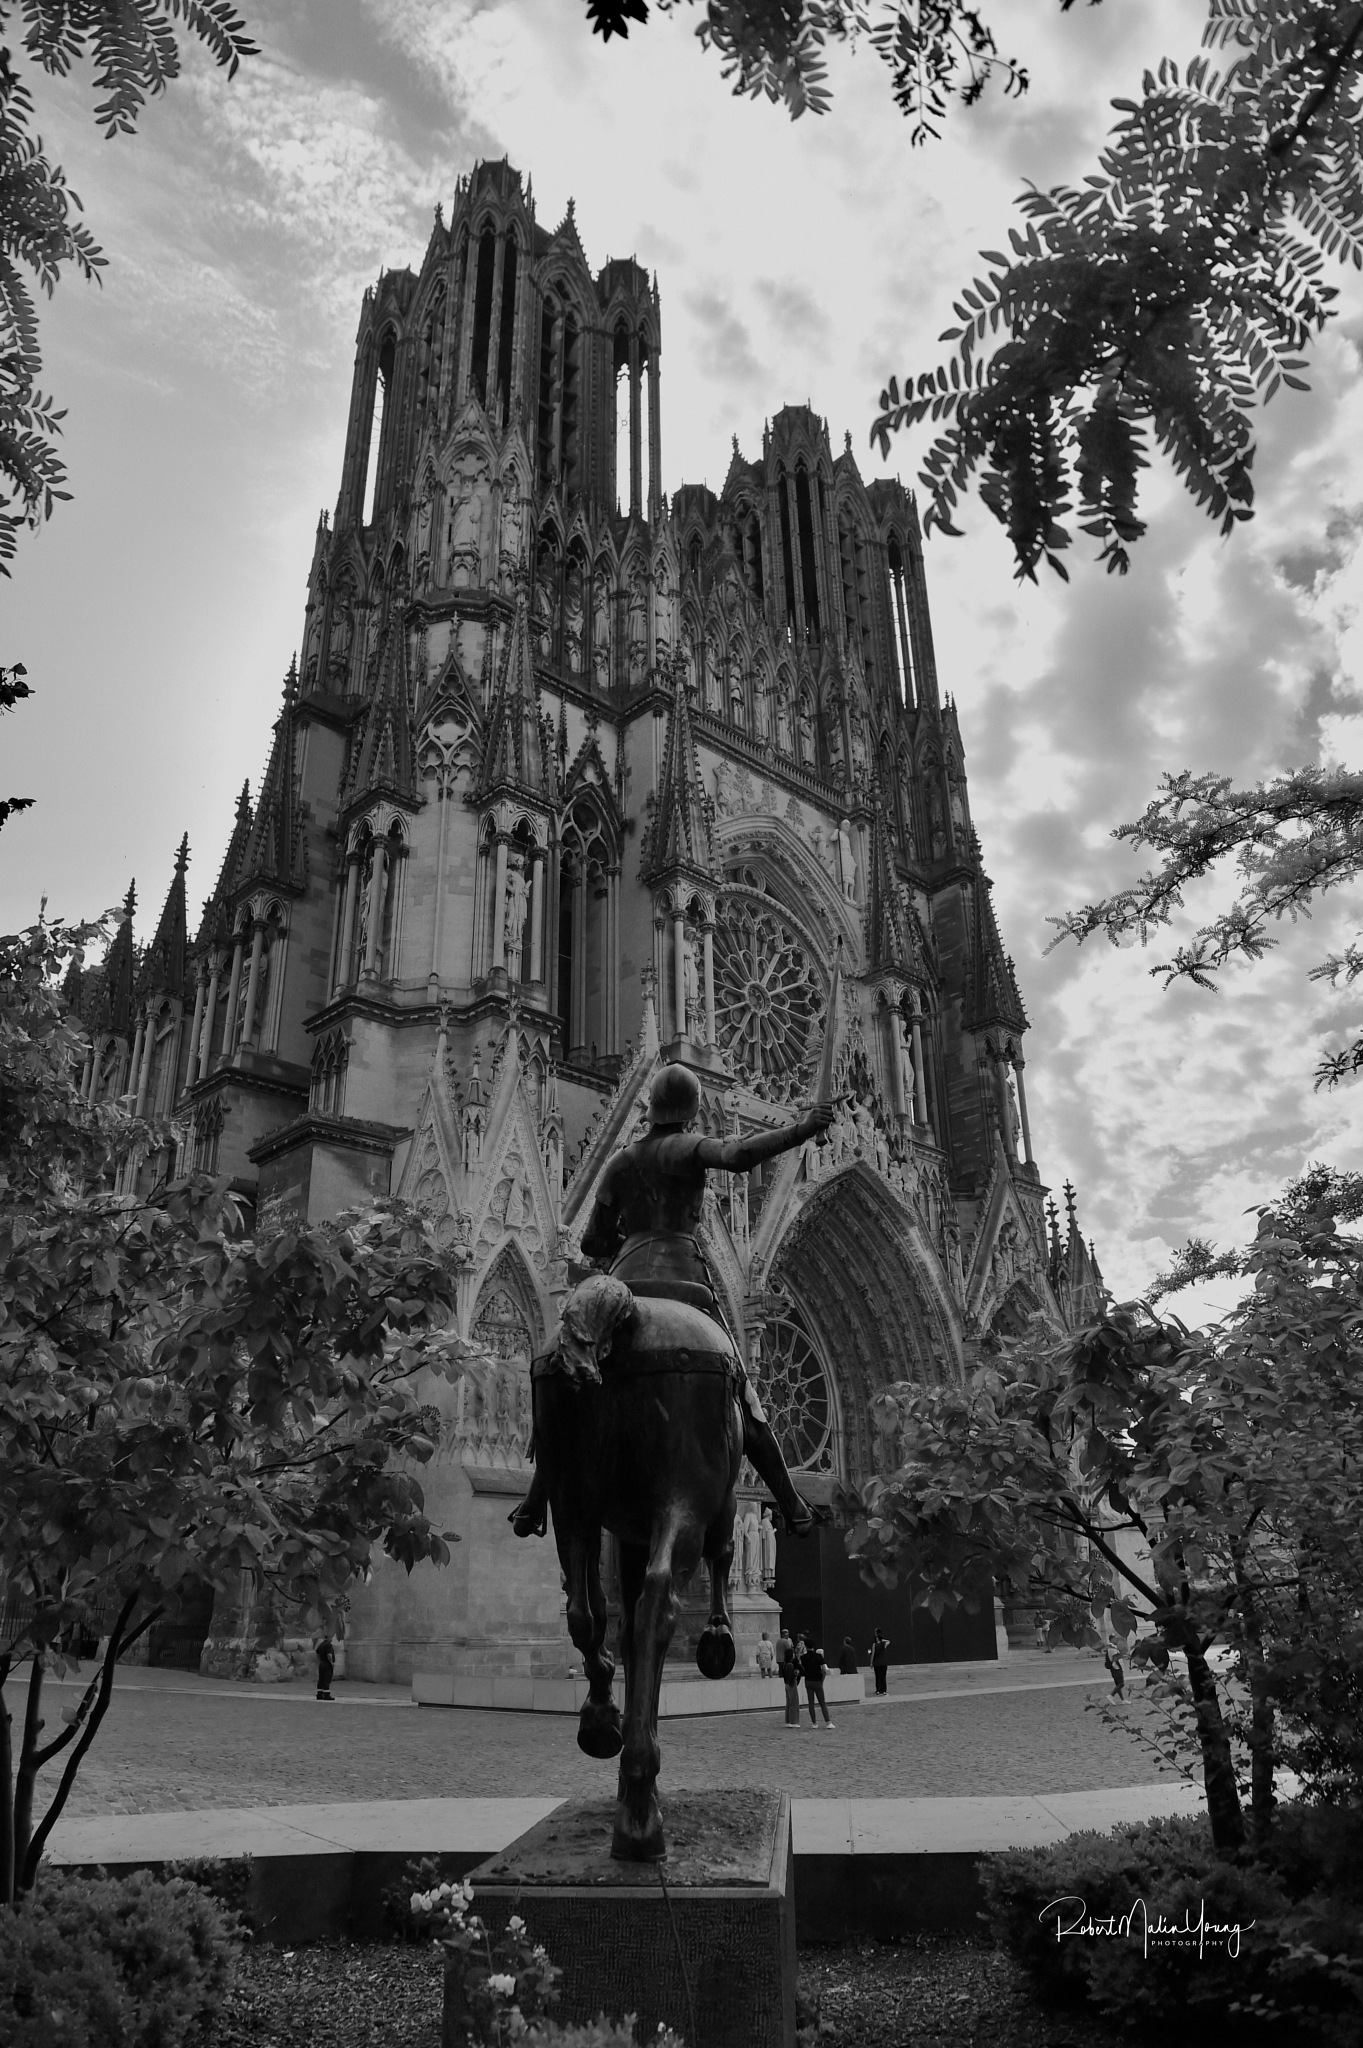 The great Cathedral of Reims - France 2018 by Robert Malin Young